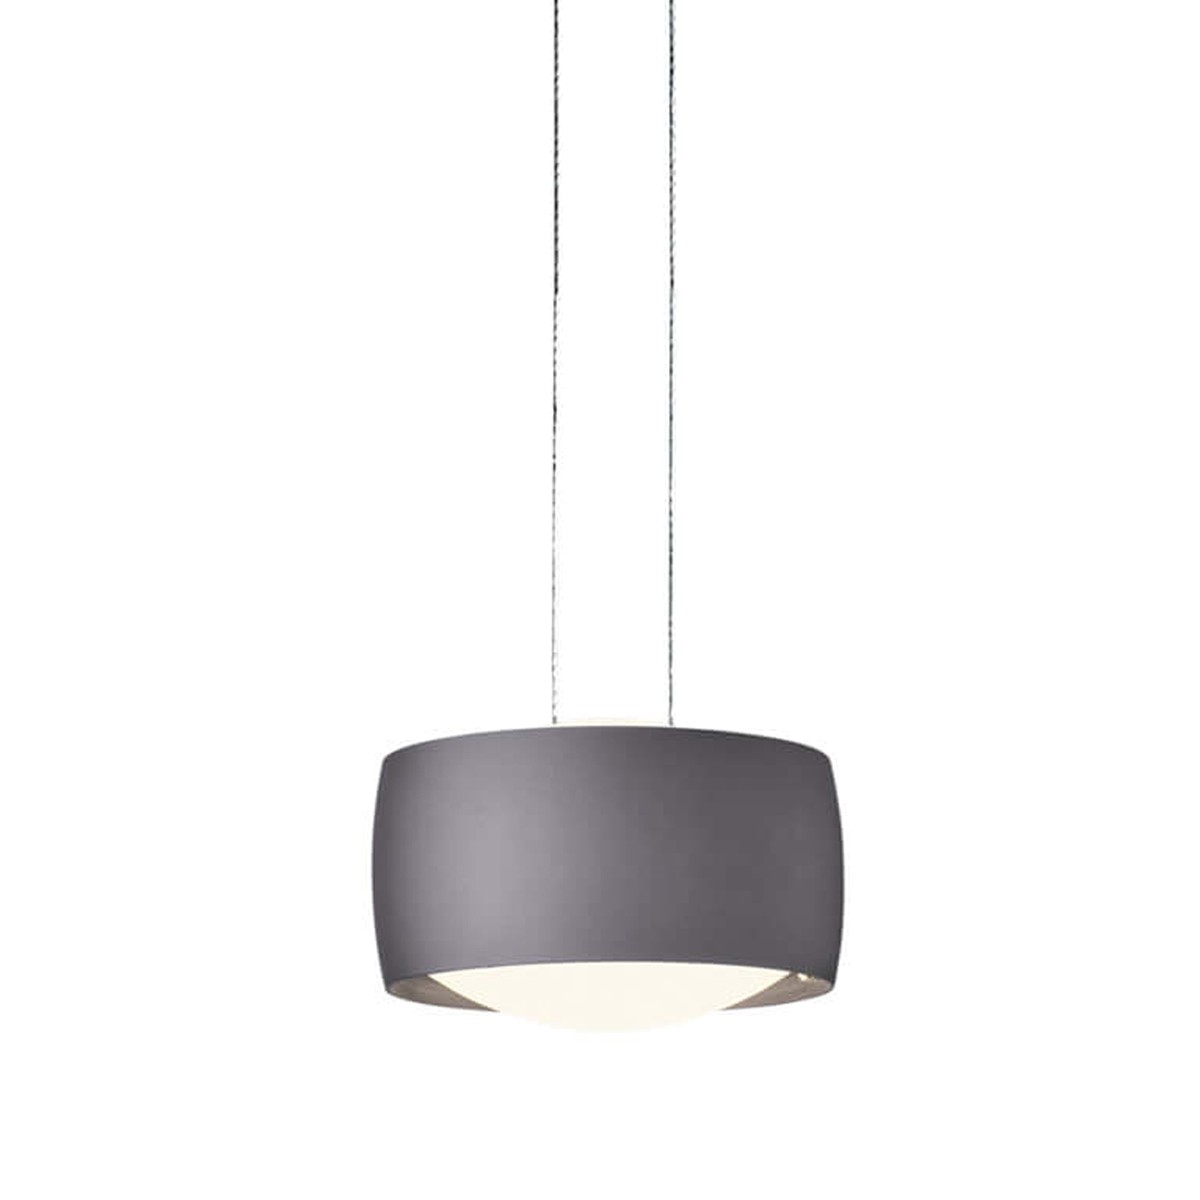 Oligo Grace LED Pendelleuchte, Purple grey